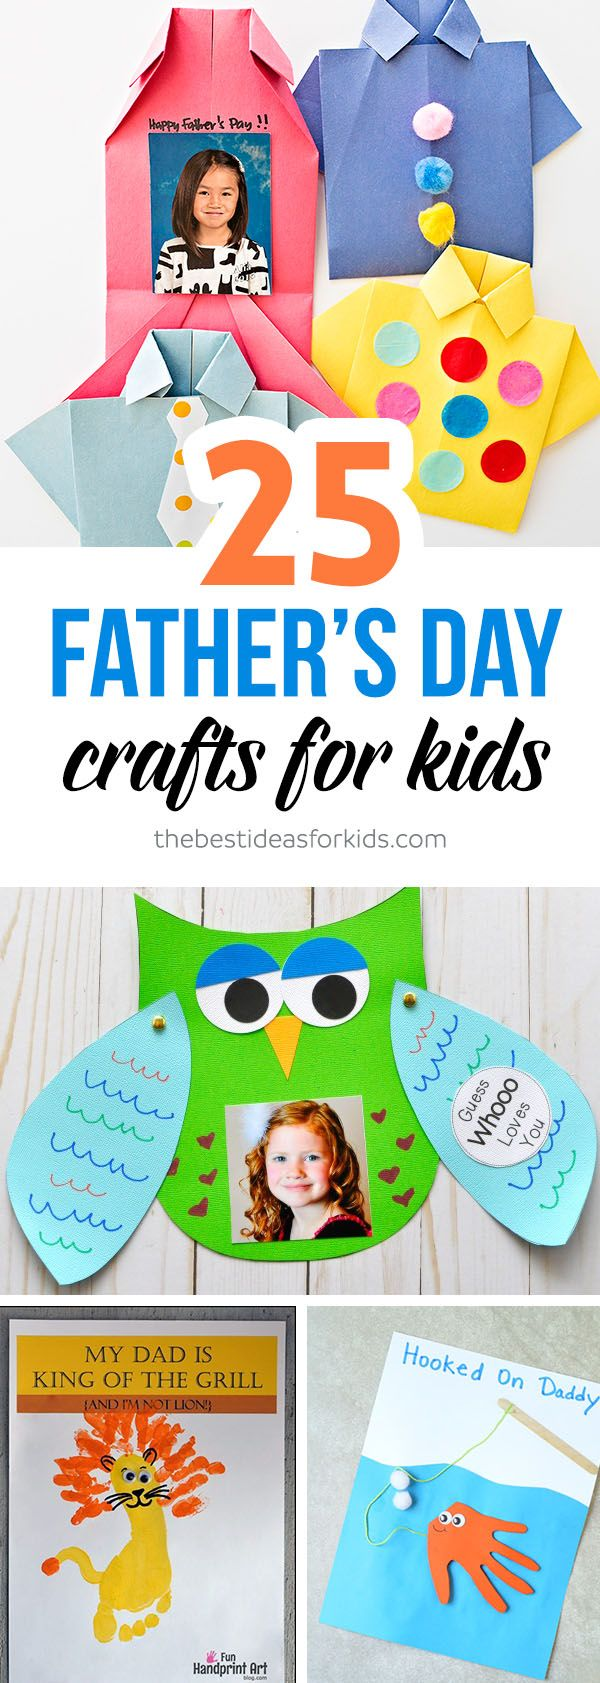 25 of the Best Handmade and Craft Ideas for Father's Day! Tie shirts, cute card ideas, salt dough keepsakes, mugs, handprints, footprints and more!